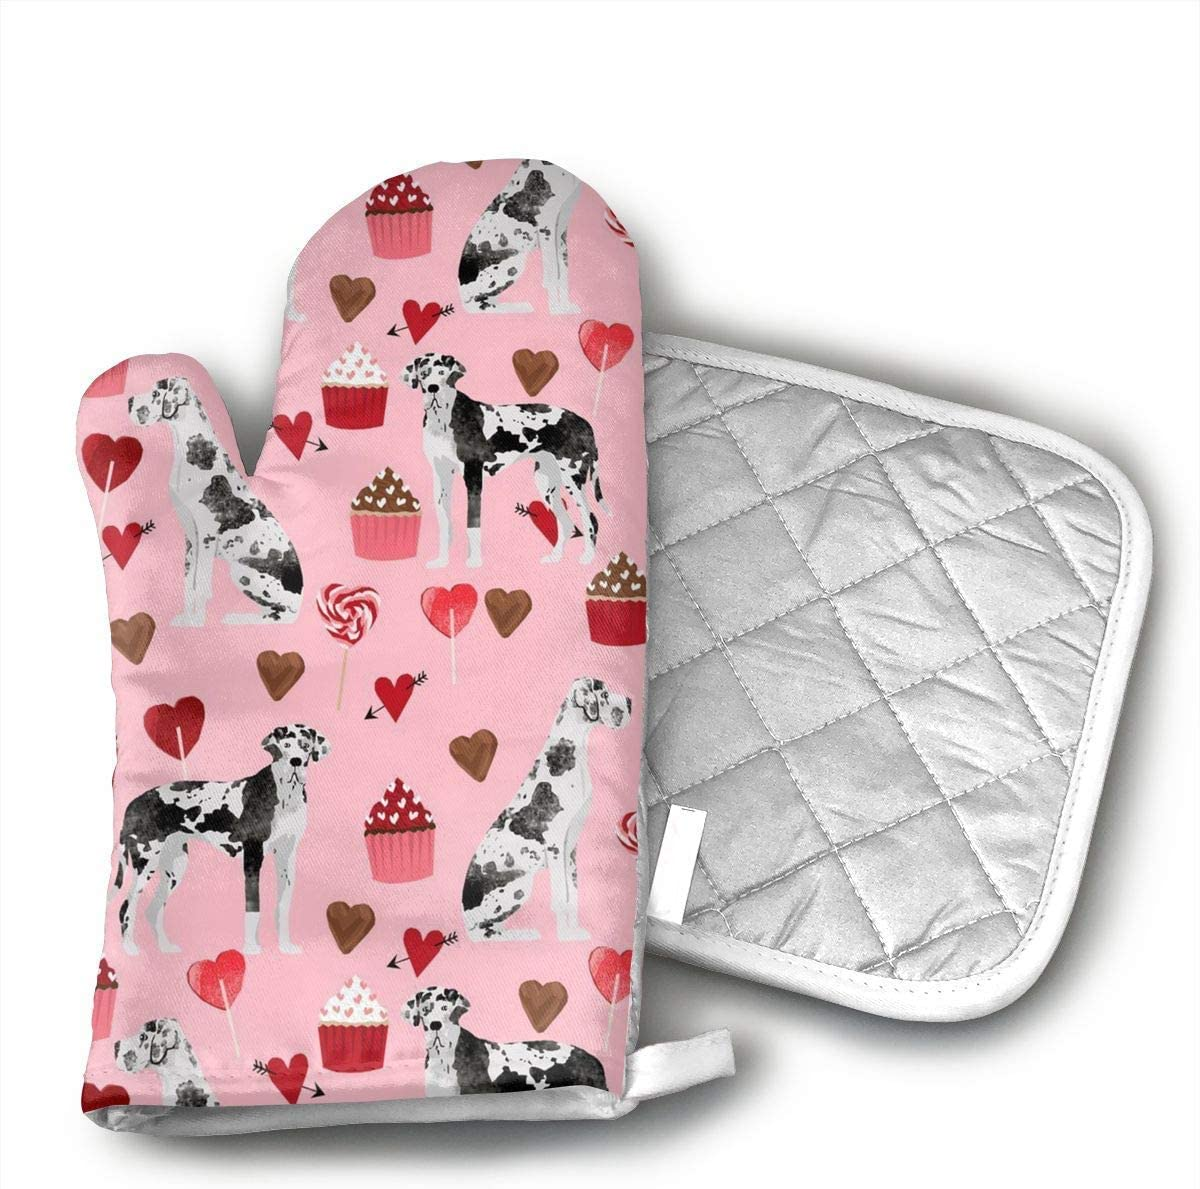 Great Dane Valentines Oven Mitts and Pot Holders Set with Polyester Cotton Non-Slip Grip, Heat Resistant, Oven Gloves for BBQ Cooking Baking, Grilling